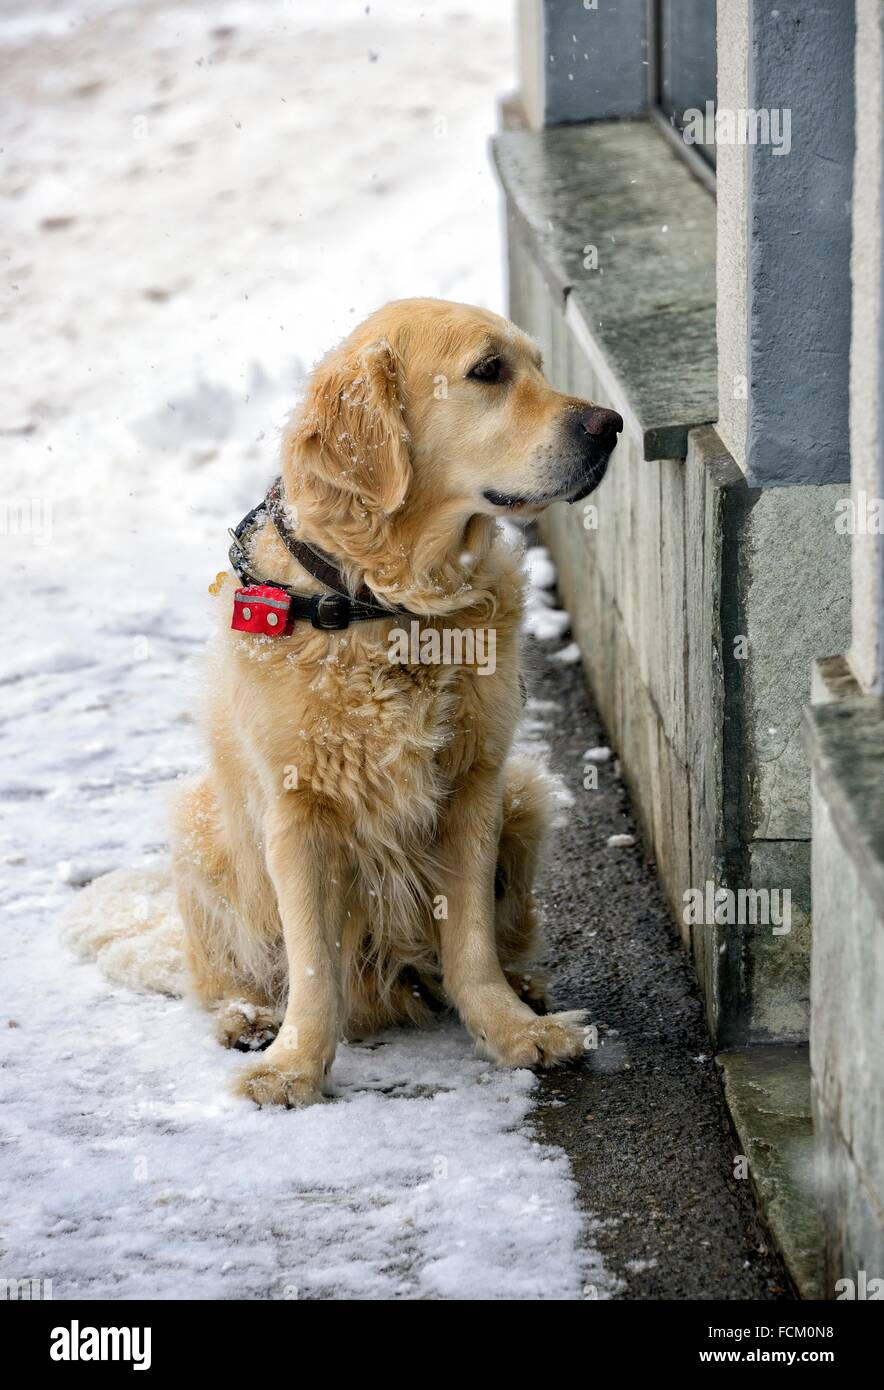 dog awaiting in front of shop in winter, Saas-Fee, Valais, Switzerland. - Stock Image